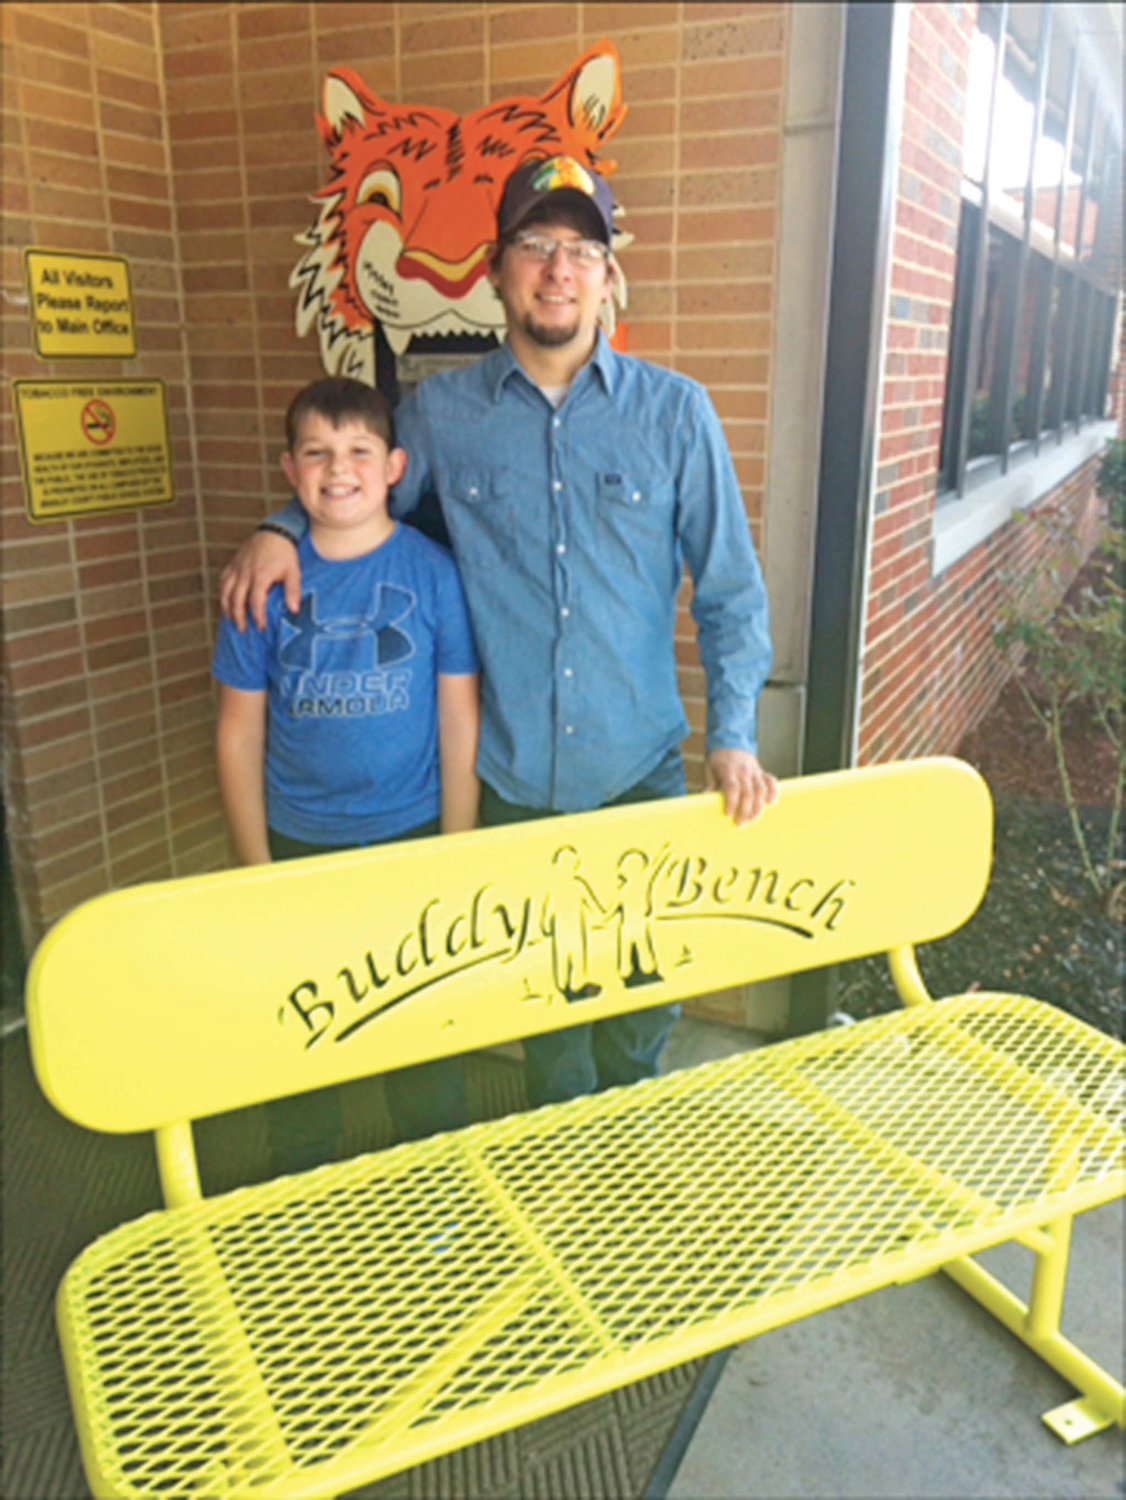 Braddock Tippit, a fourth-grade student at Hopewell Elementary School, realized a dream he's had since the first grade. With the help of his brother, Caleb Hixon, a professional welder, Braddock got to see the installation of a Buddy Bench for the school playground become a reality.